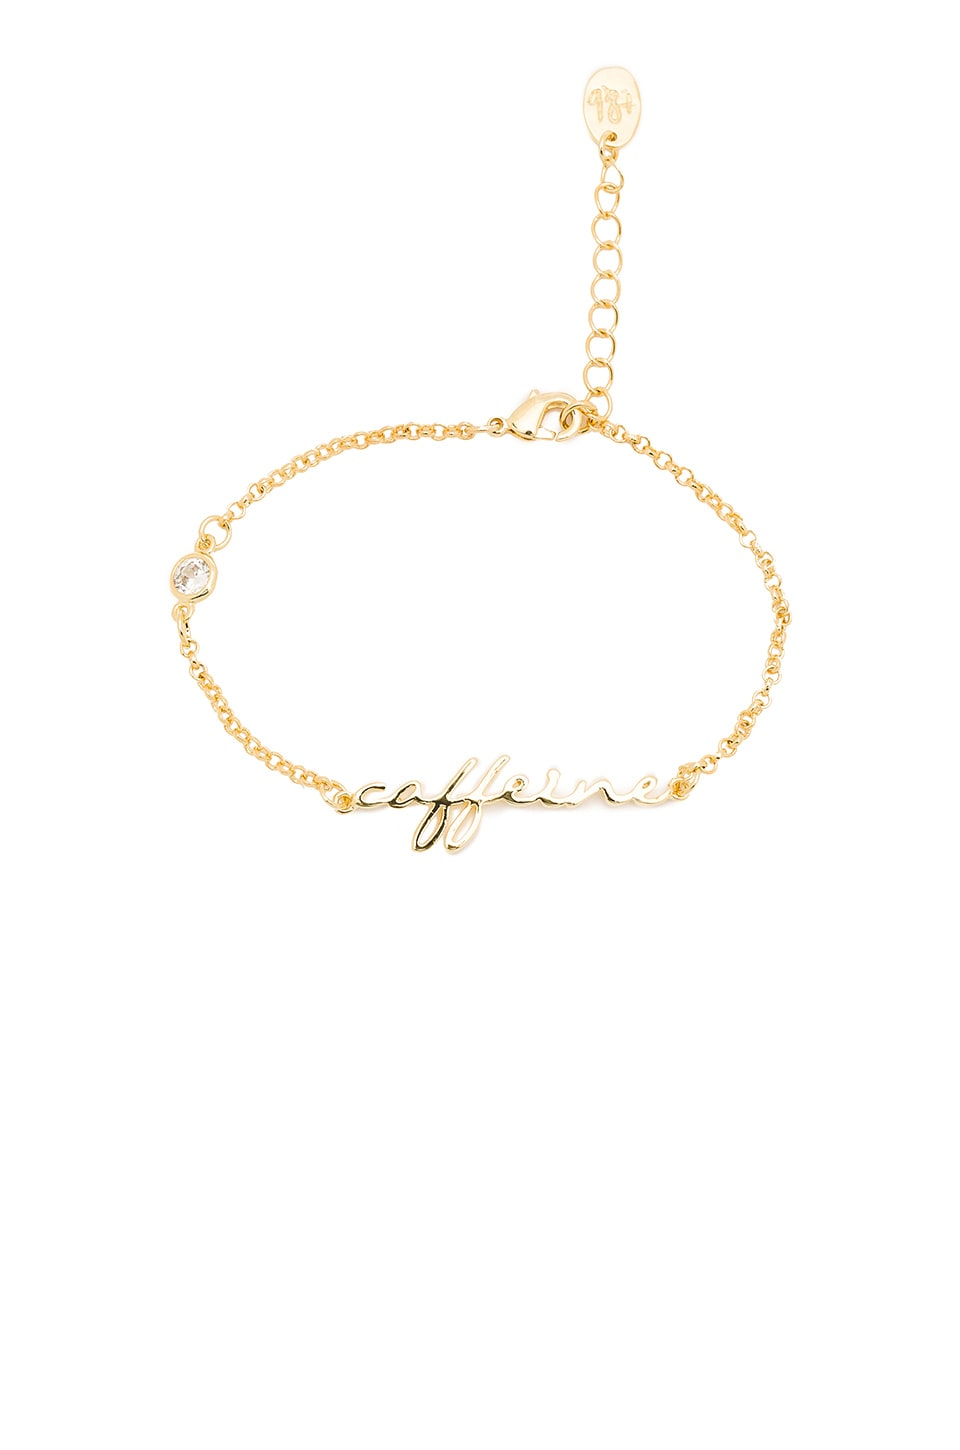 Tawnie & Brina Caffeine Bracelet in Gold